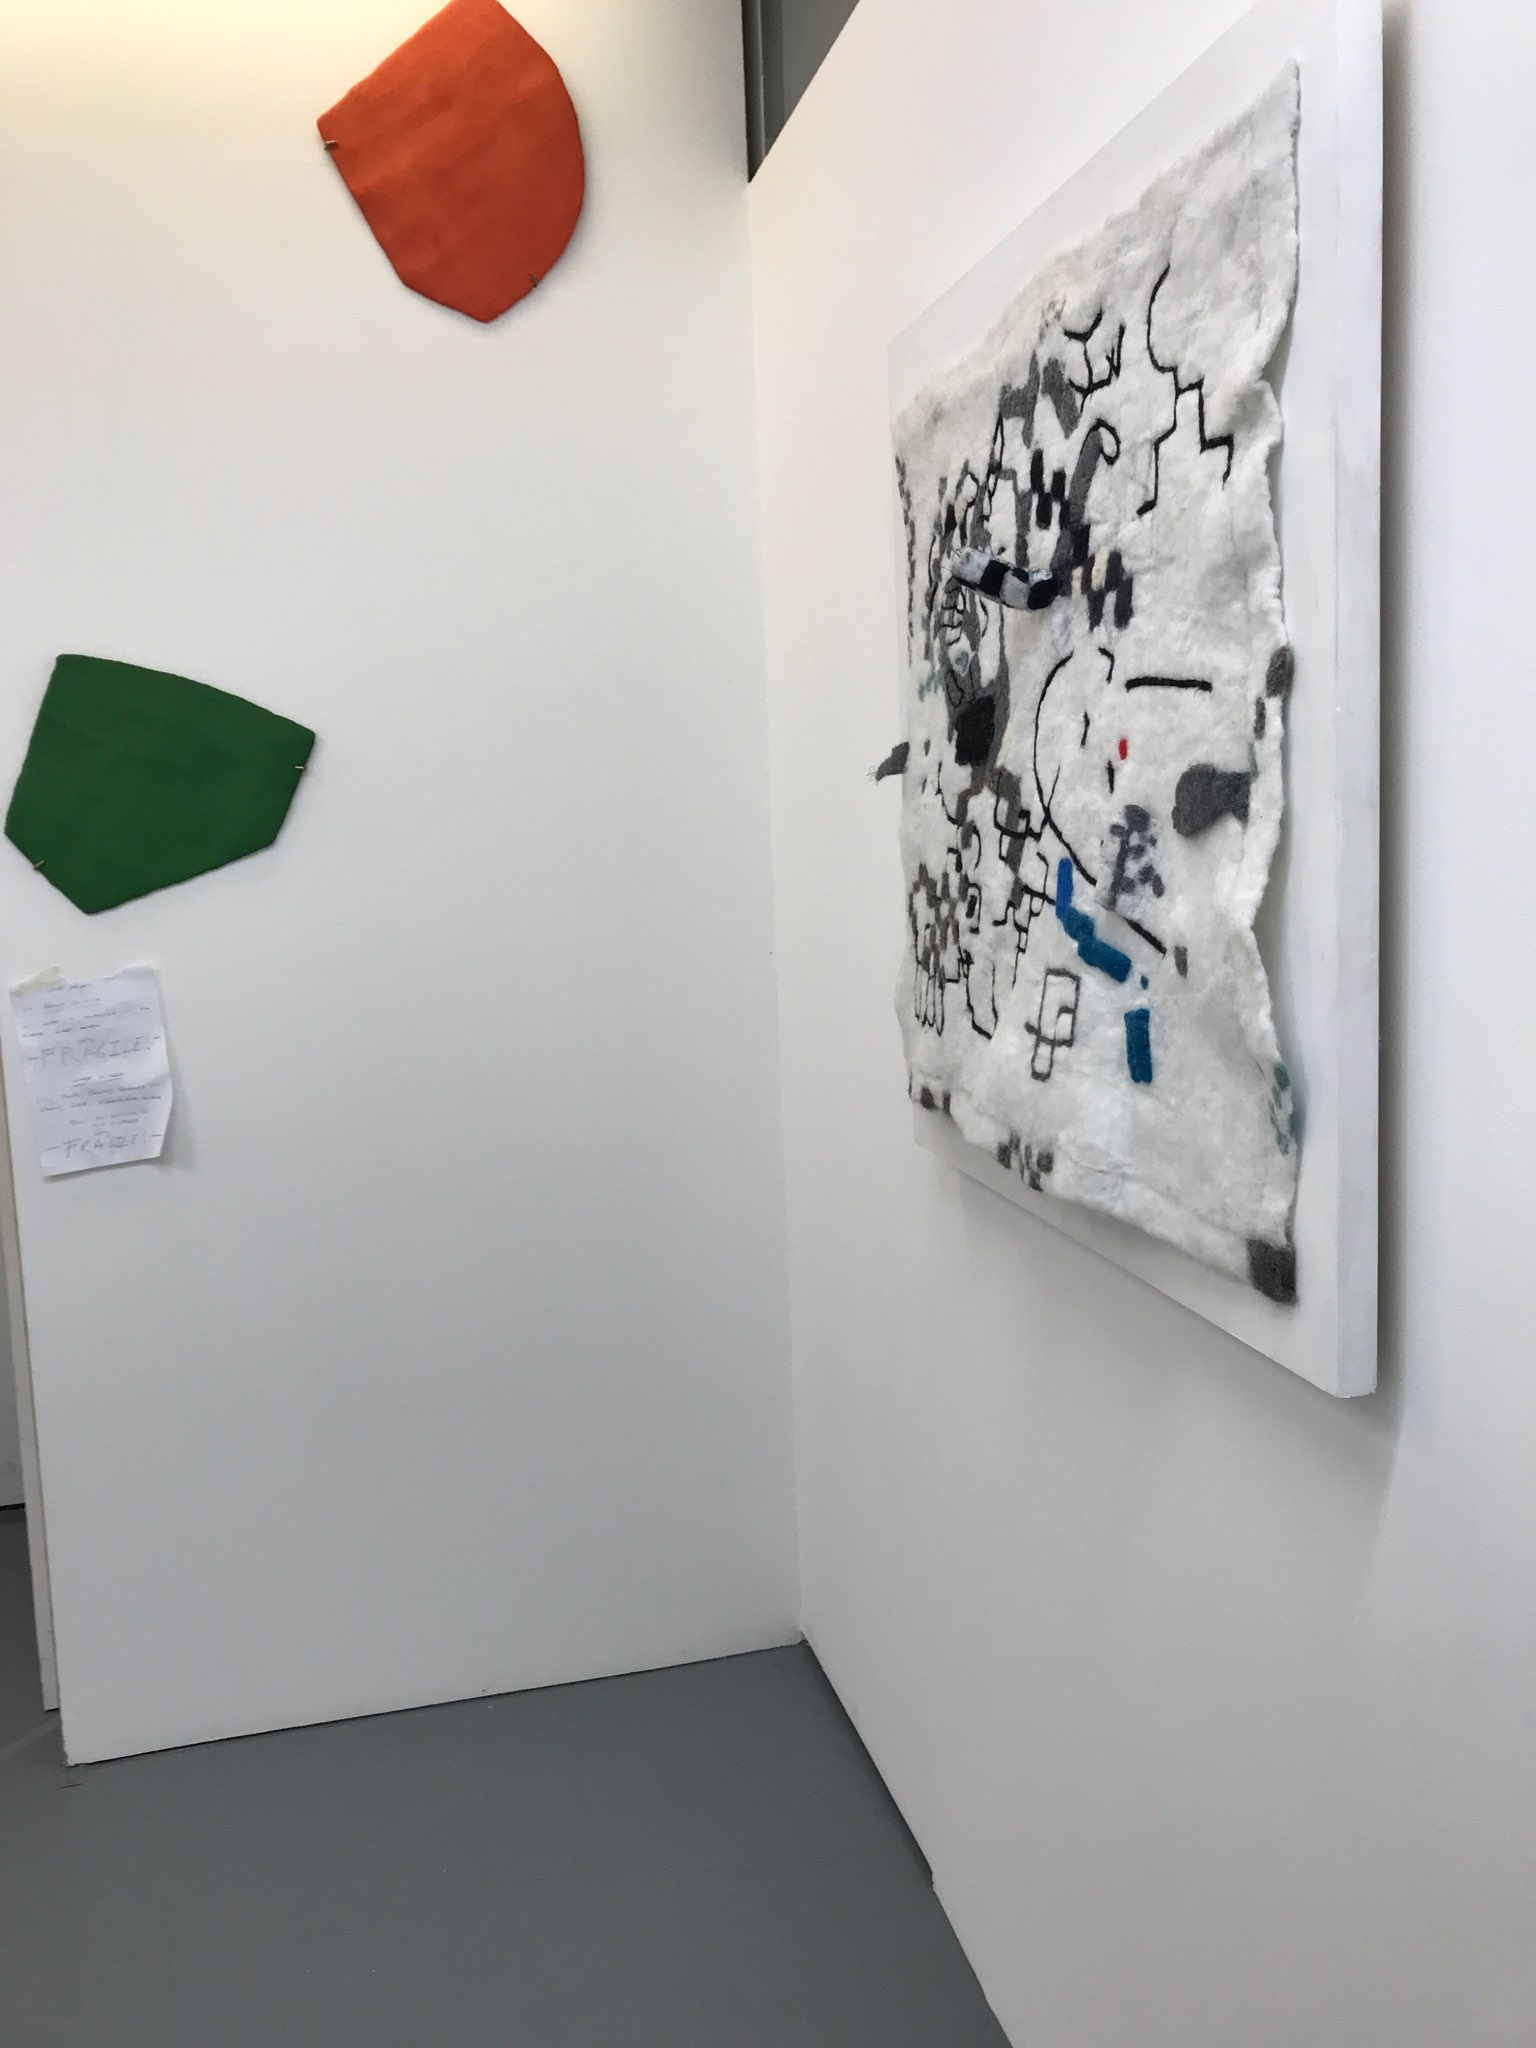 Tina Douglas fuzzy logic 2018, hand felted wool, stainless steel fibre, micro controllers, speakers, sound, painted ply, 91 x 91 cm, installation view